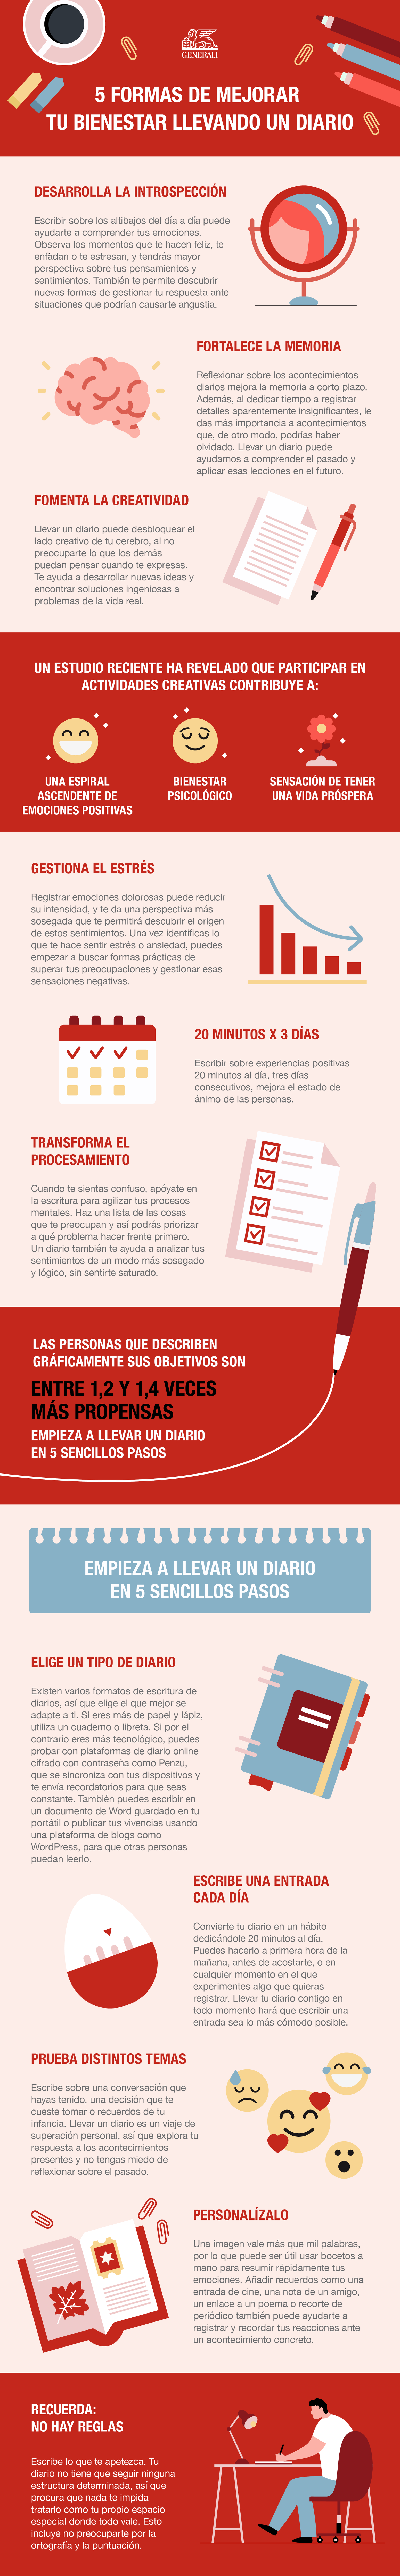 Generali_Spain_5_Ways_Journaling_Can_Improve_Your_Wellbeing.png